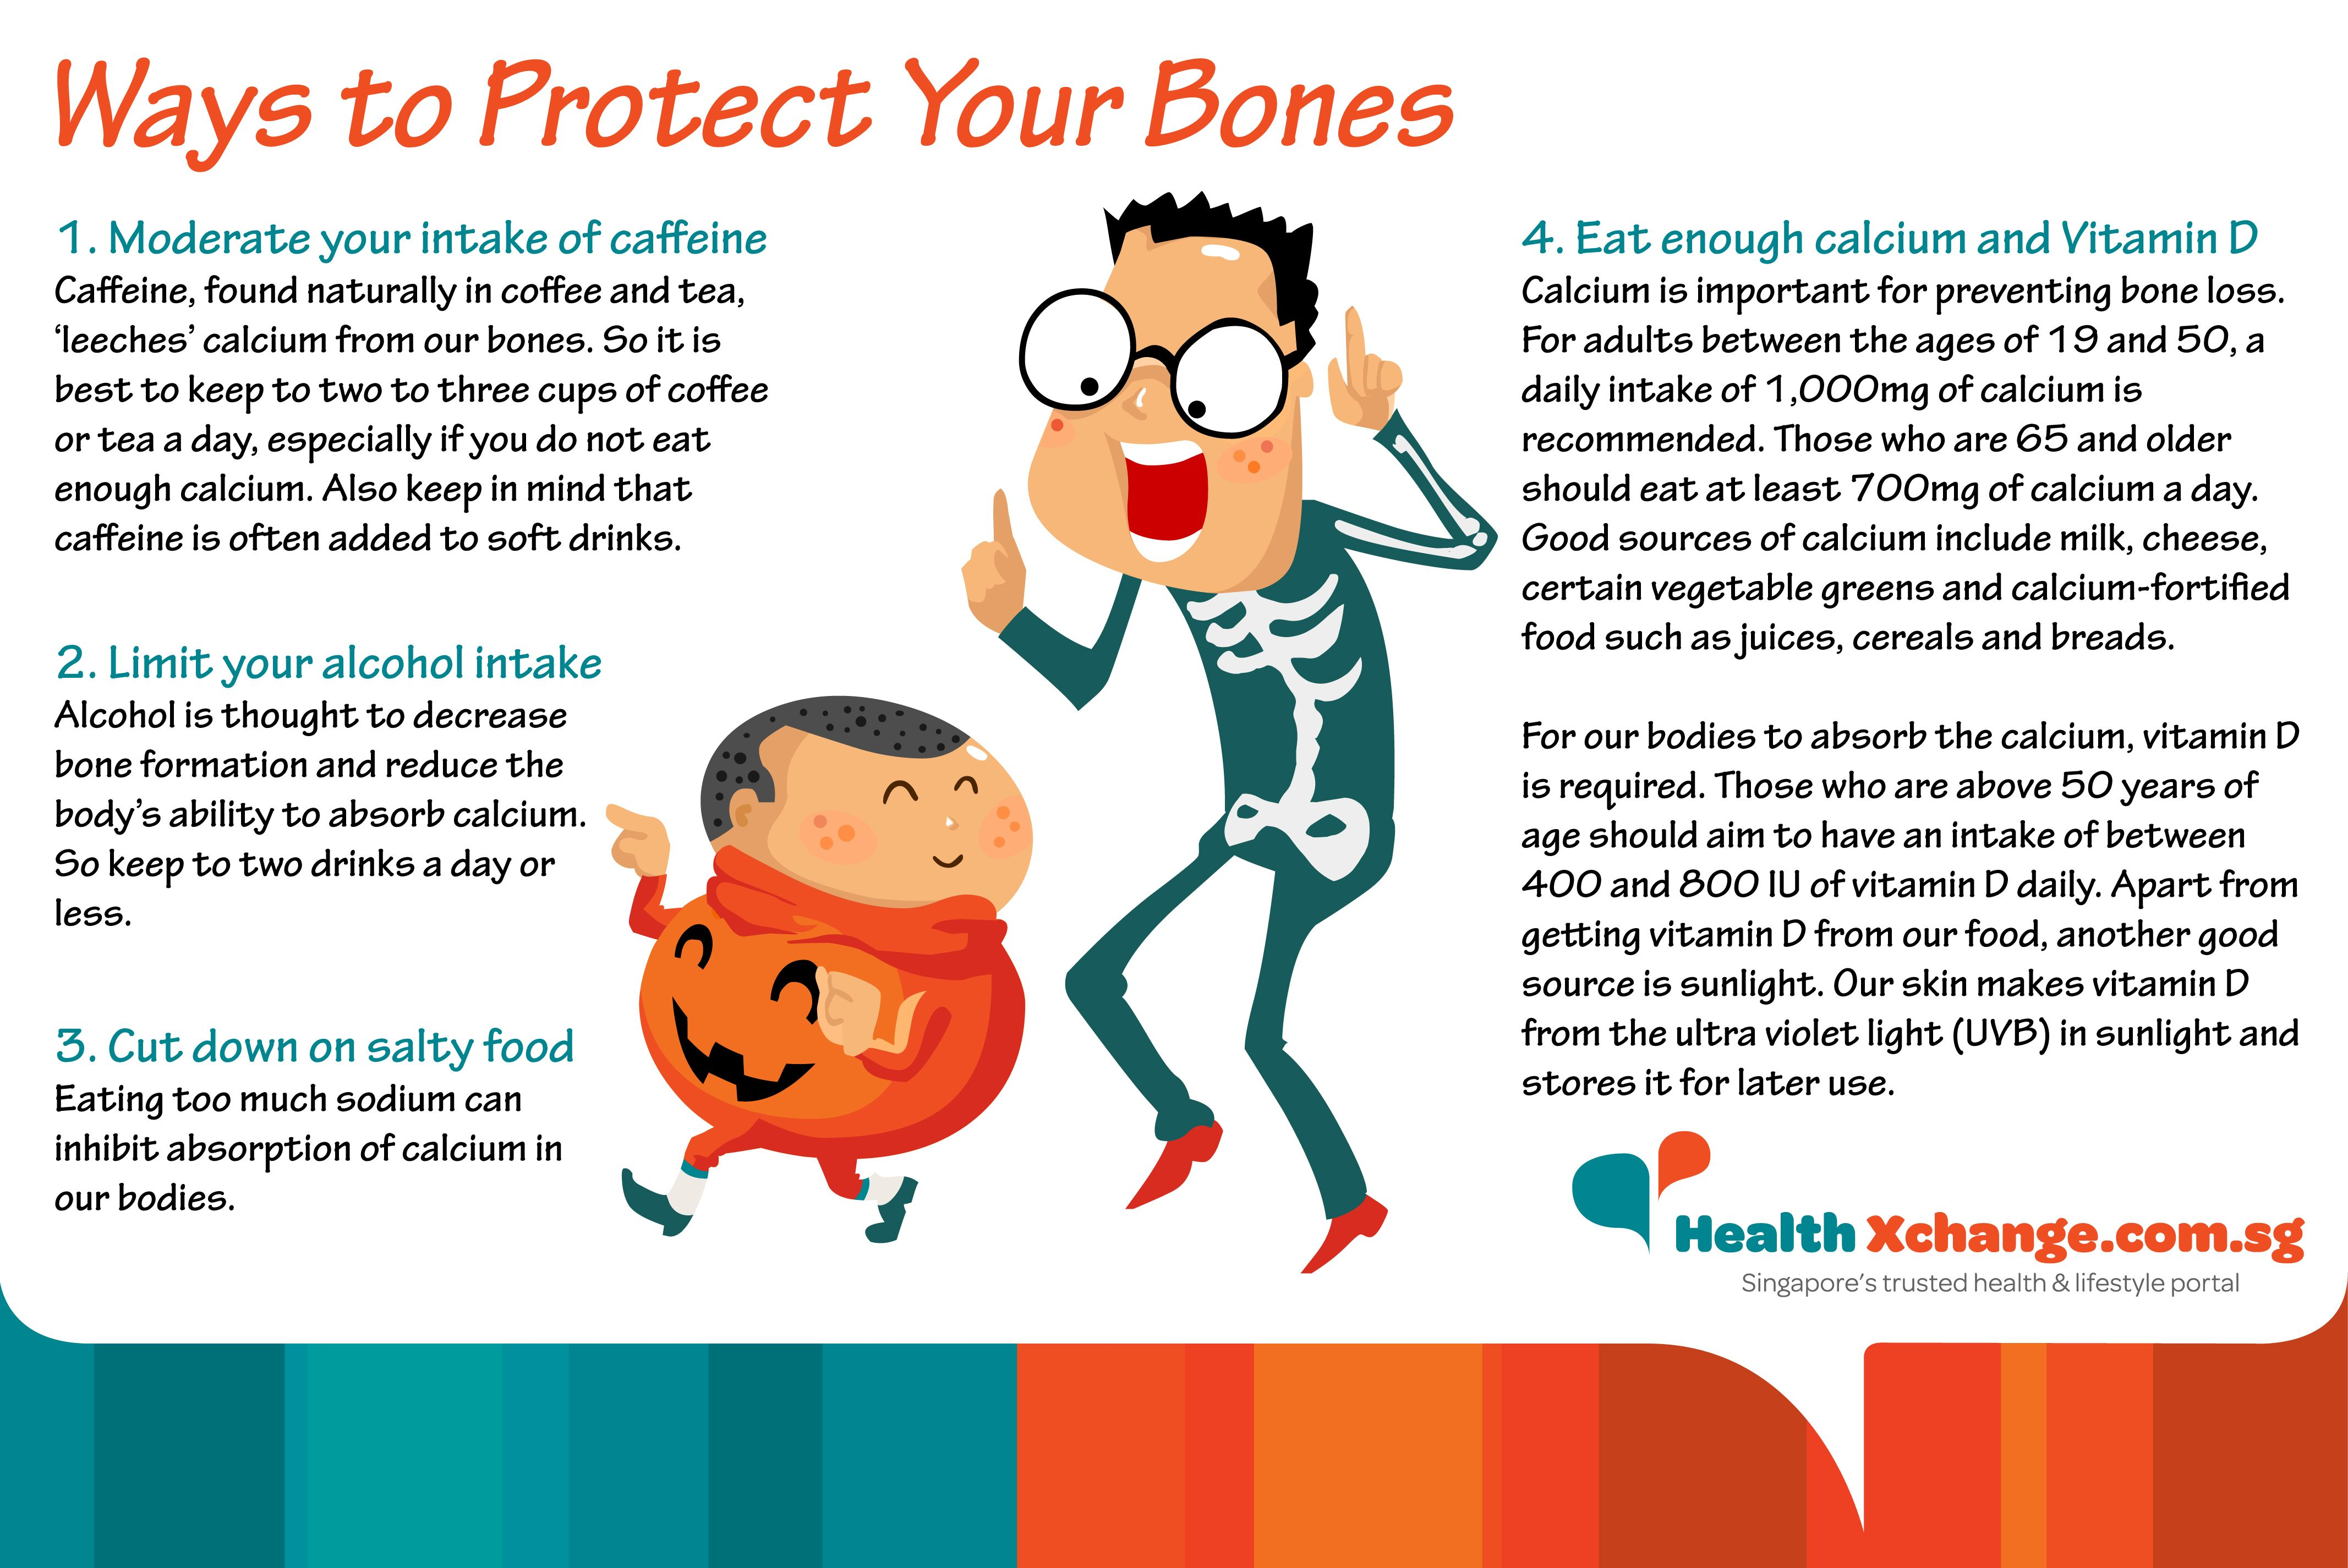 How to Protect Your Bones if You Have Low Testosterone